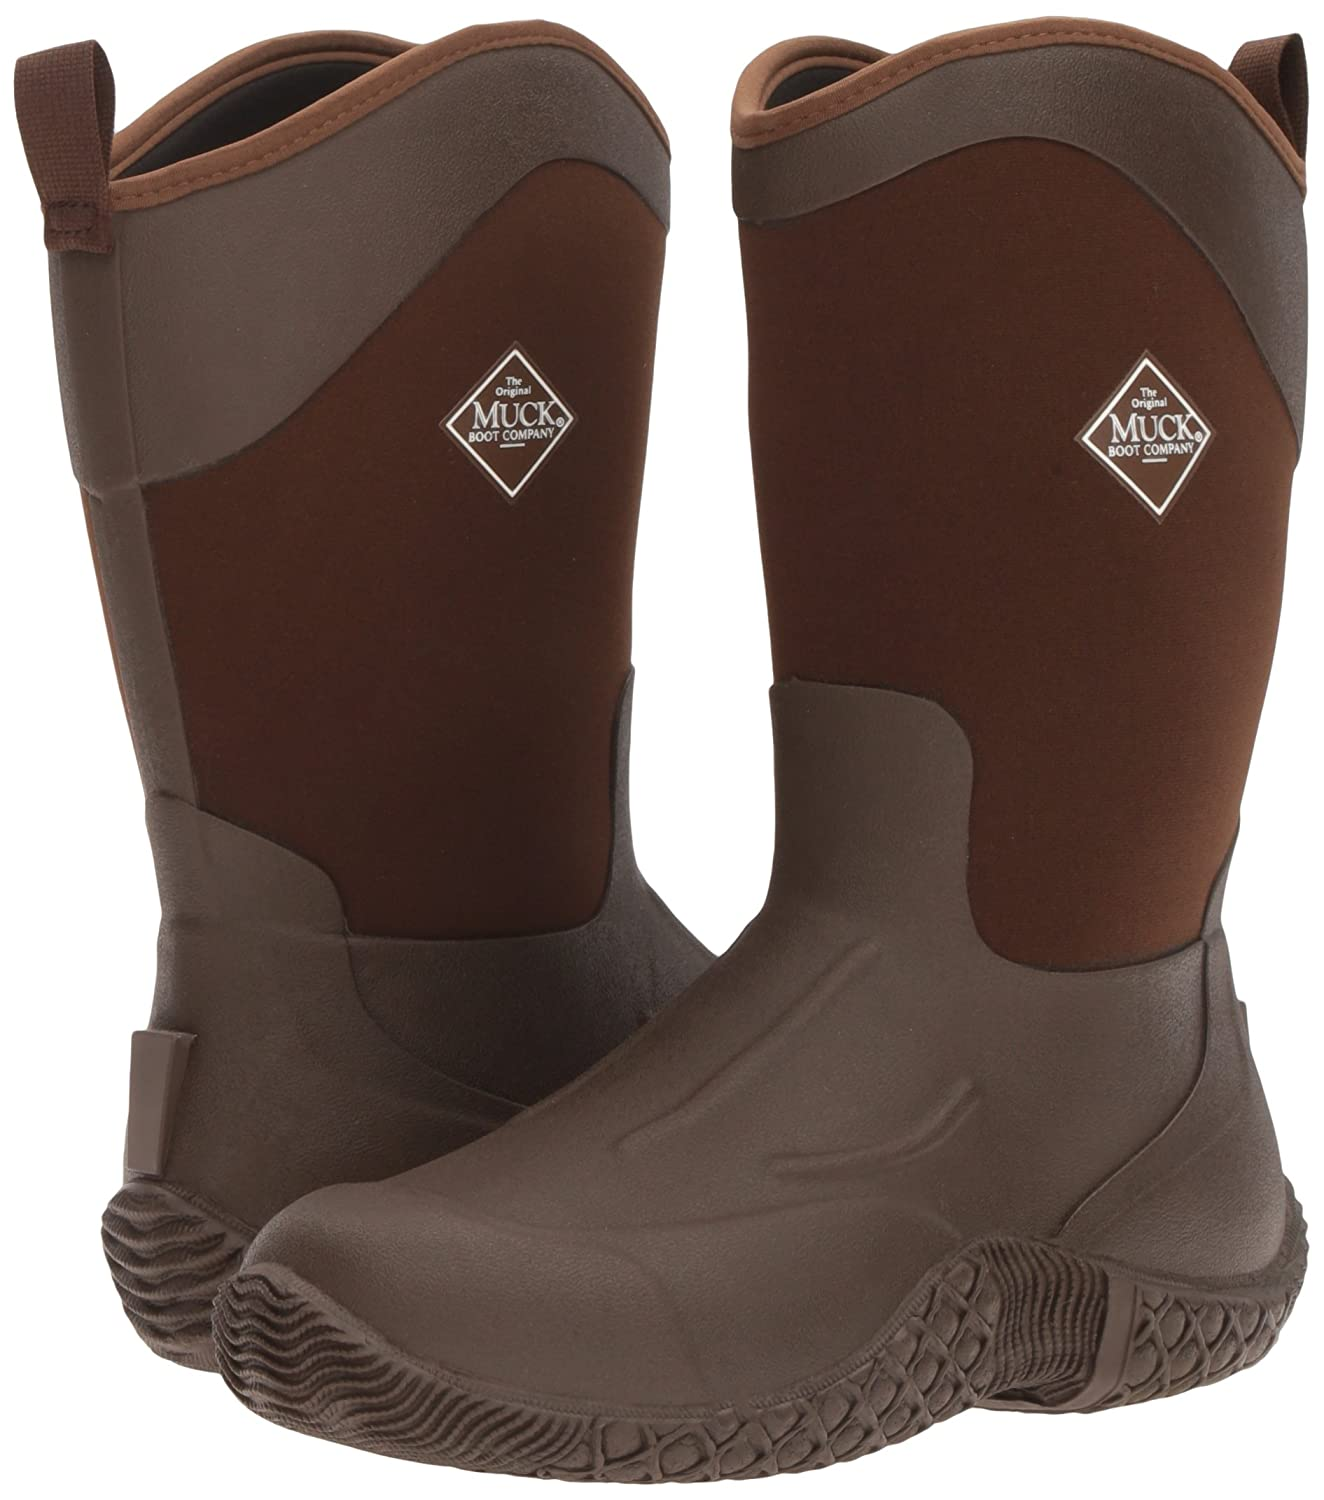 Muck Boot Women's Tack II Mid Snow B00TSRANOY 10 B(M) US|Brown